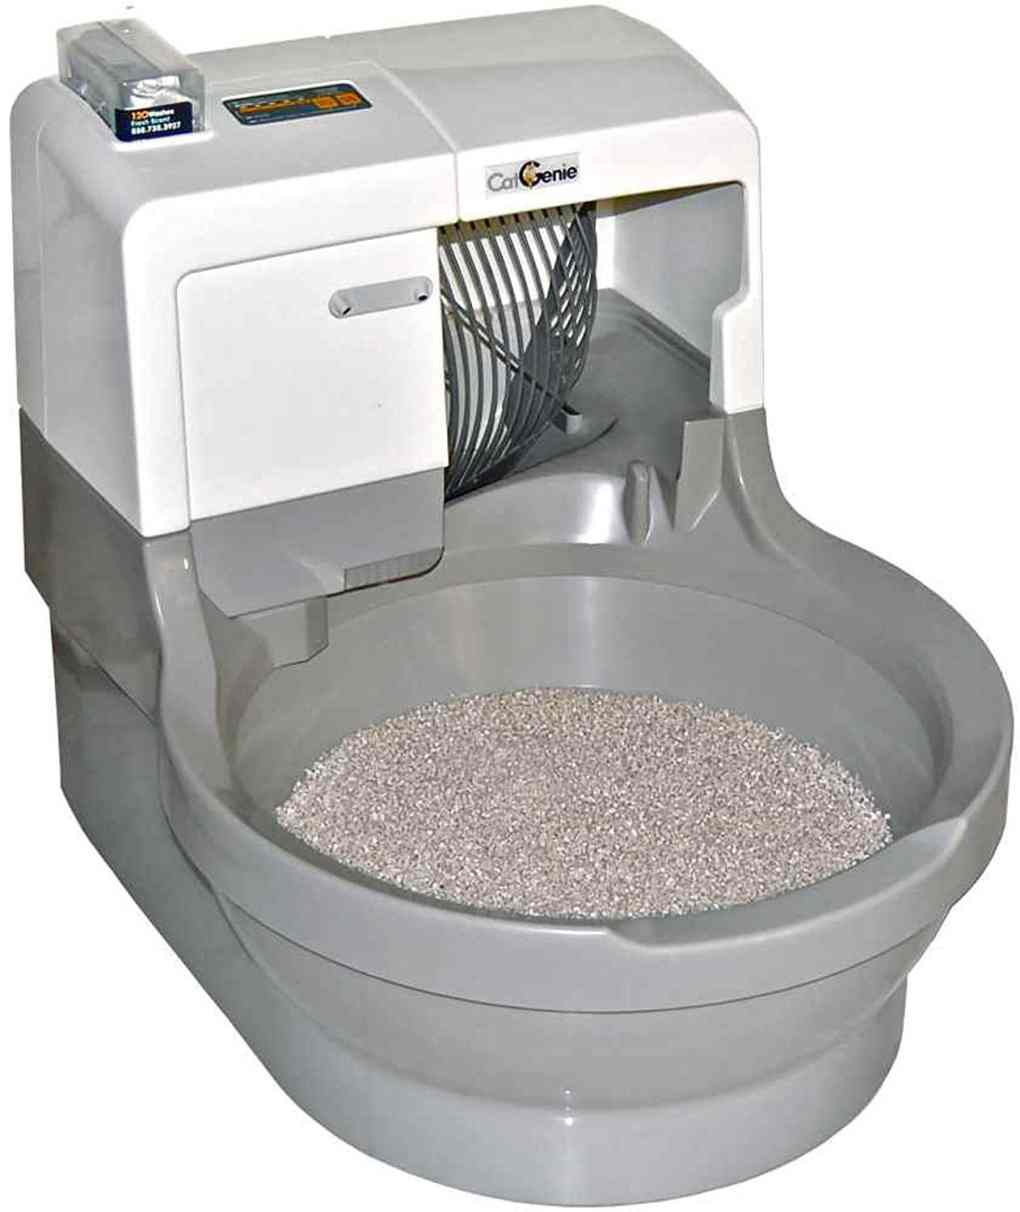 Top 5 Litter Box Solutions